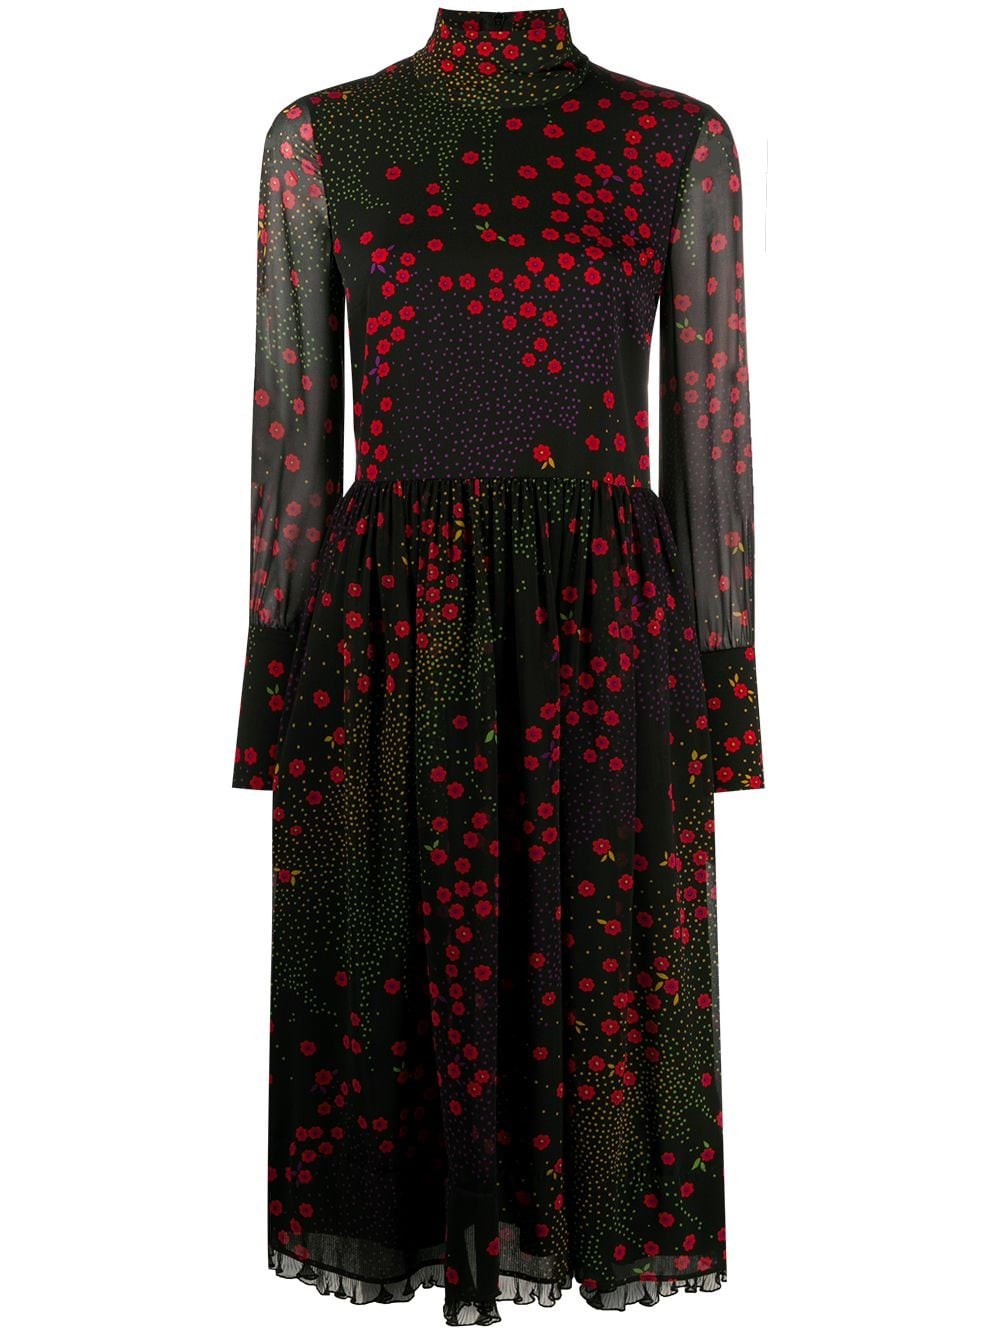 REDVALENTINO Loral-Print Mid-Length Dress